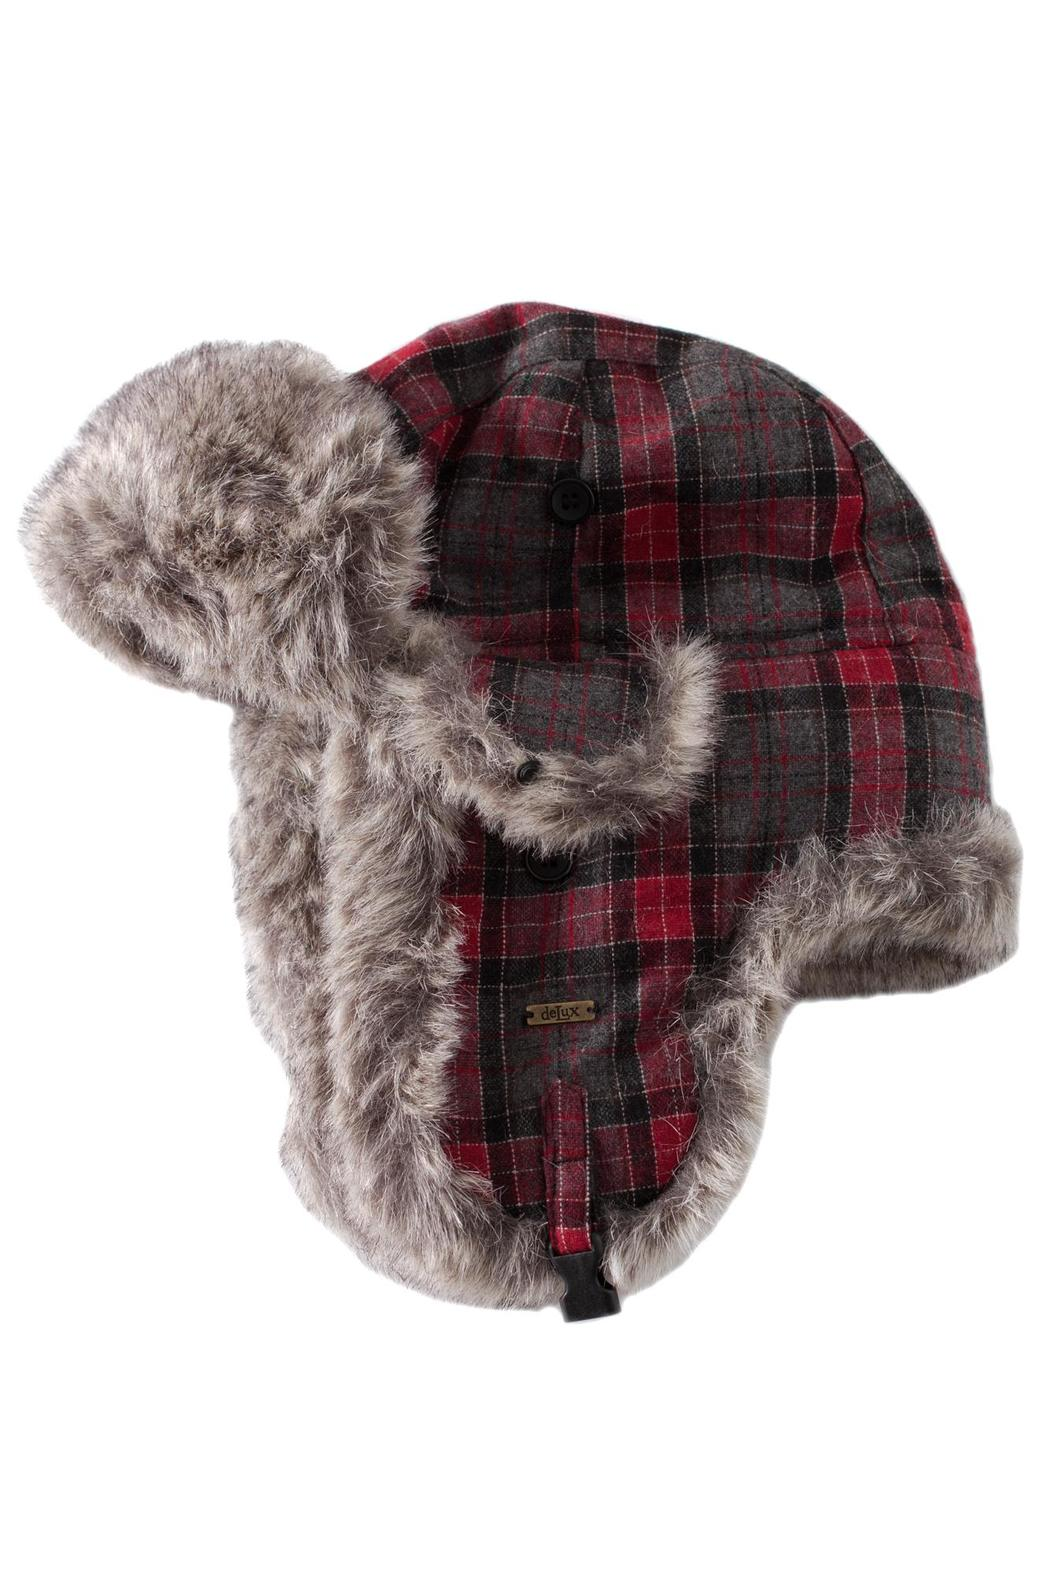 7892e021c DeLux Plaid Trapper Hat from Philadelphia by May 23 — Shoptiques